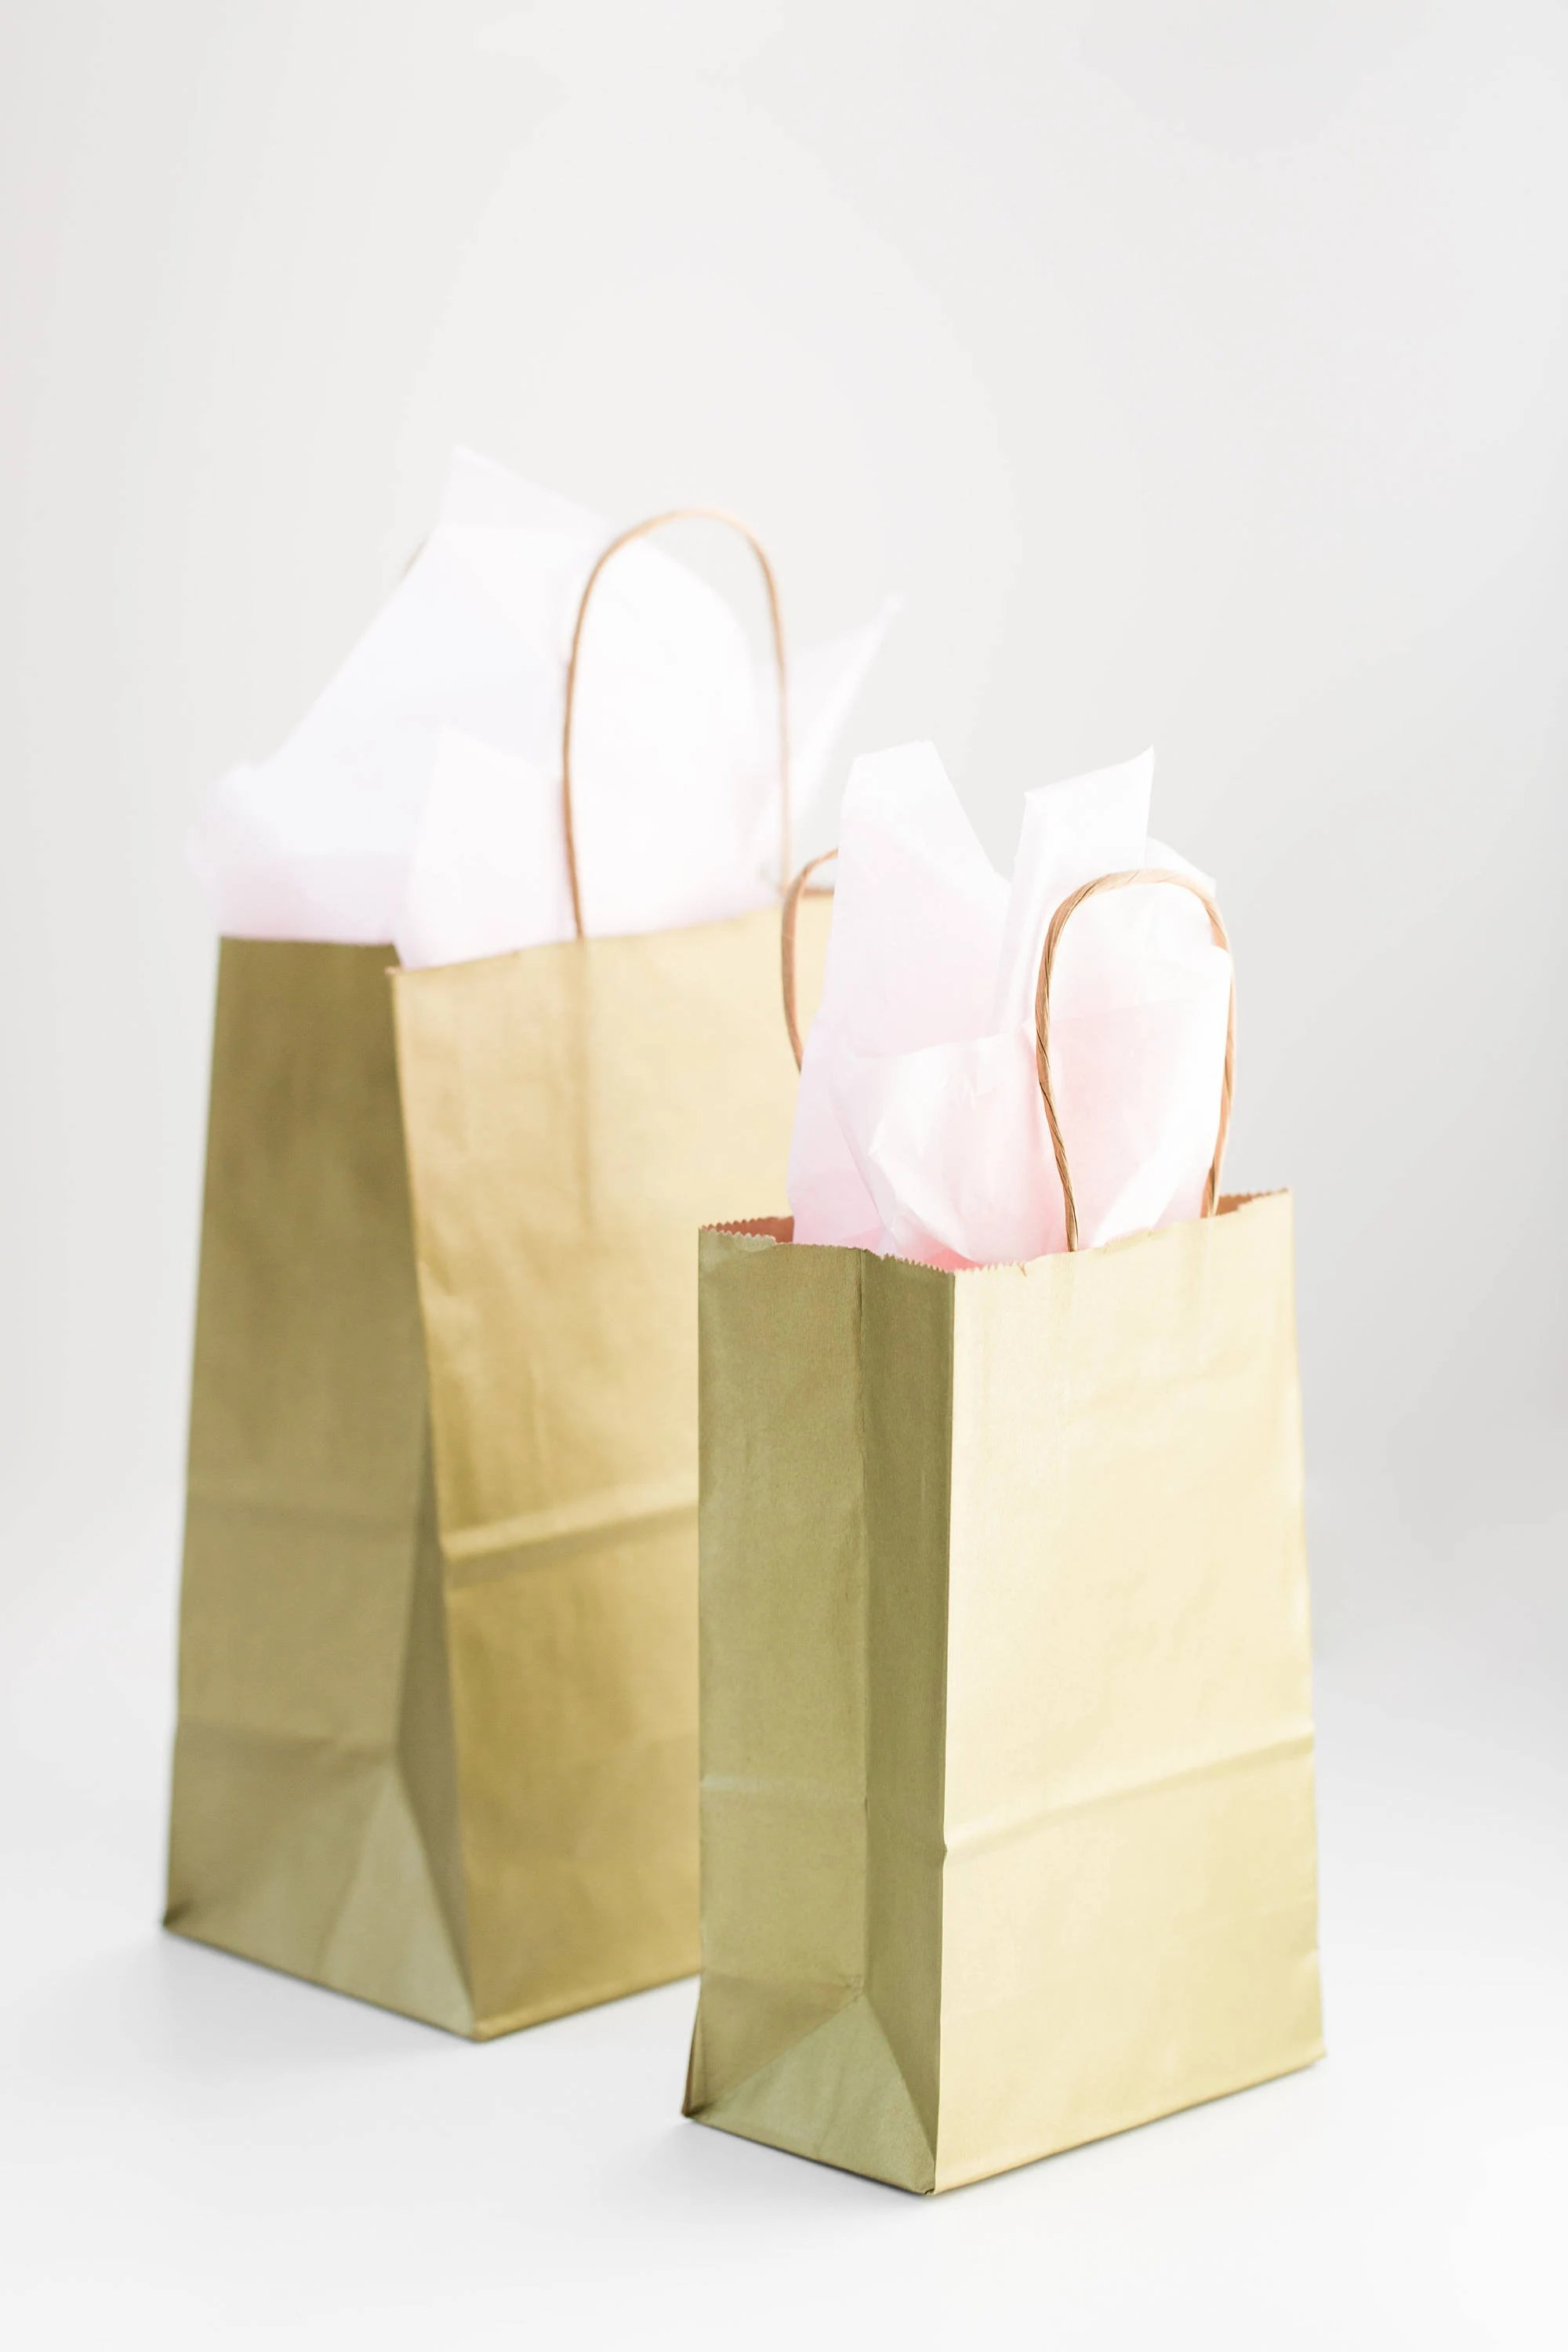 Paper Gift Bags Wholesale 75 Gold Gift Bags With Handles For Wedding Guests Welcome Bag Party Favor Bulk Wholesale Kraft Paper Bag In Metallic Gold